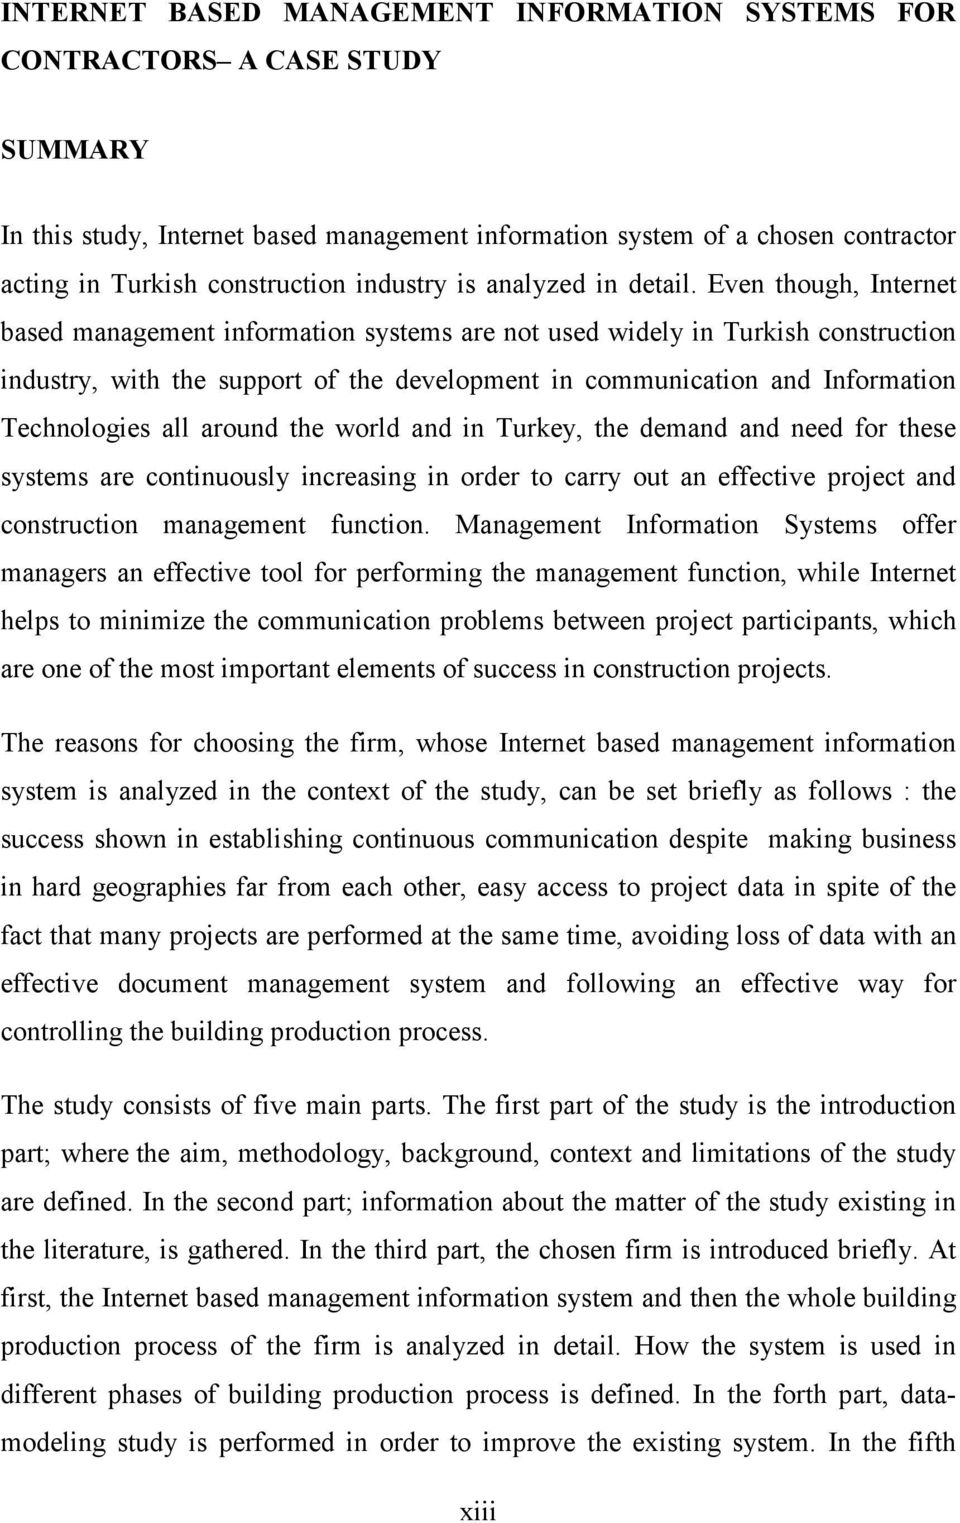 Even though, Internet based management information systems are not used widely in Turkish construction industry, with the support of the development in communication and Information Technologies all